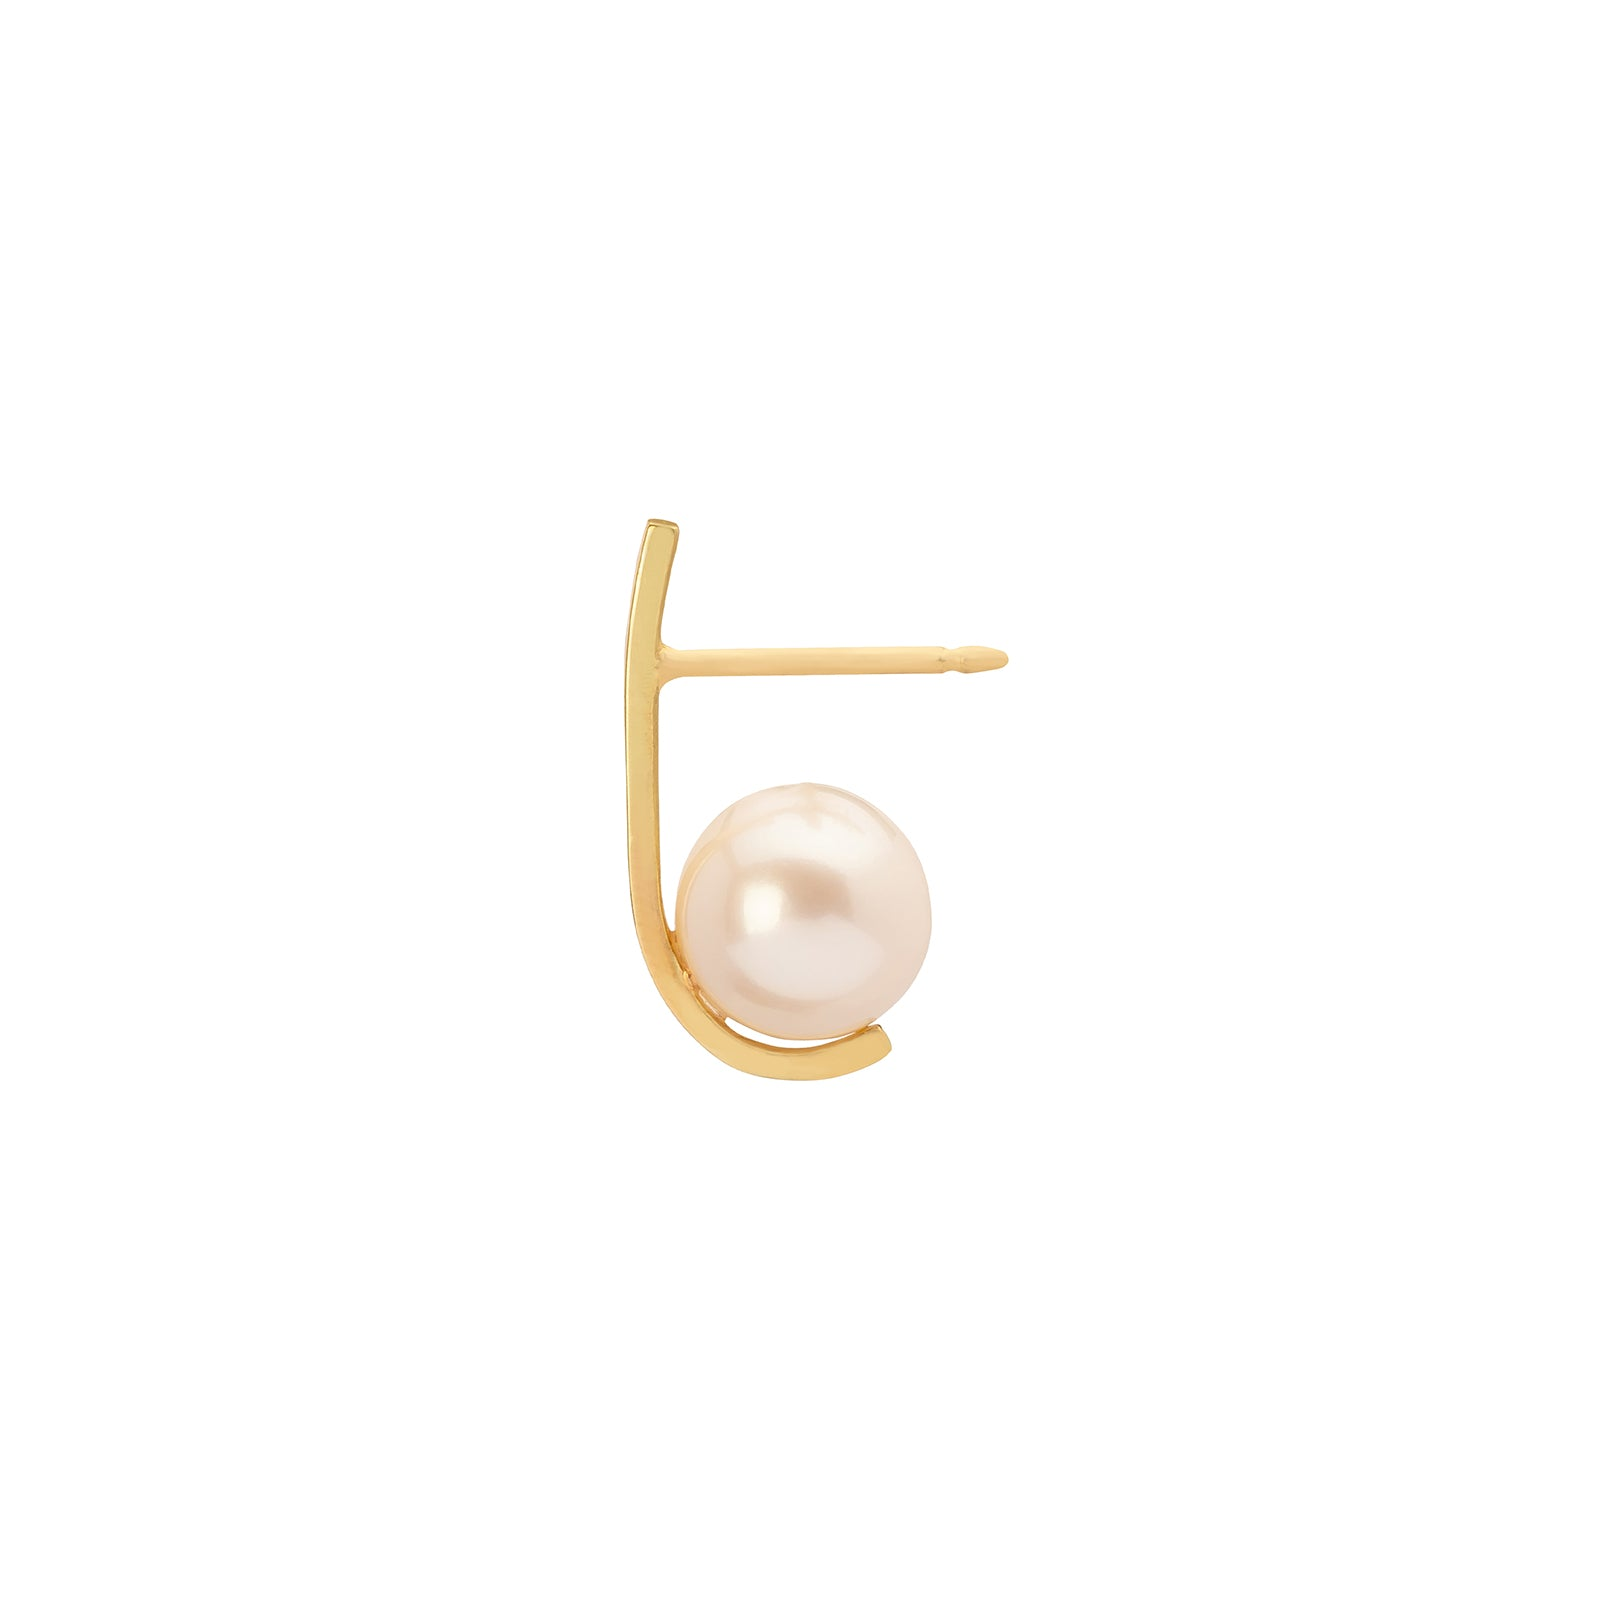 Katey Walker Pearl Curved Tucked Stud - Medium - Earrings - Broken English Jewelry